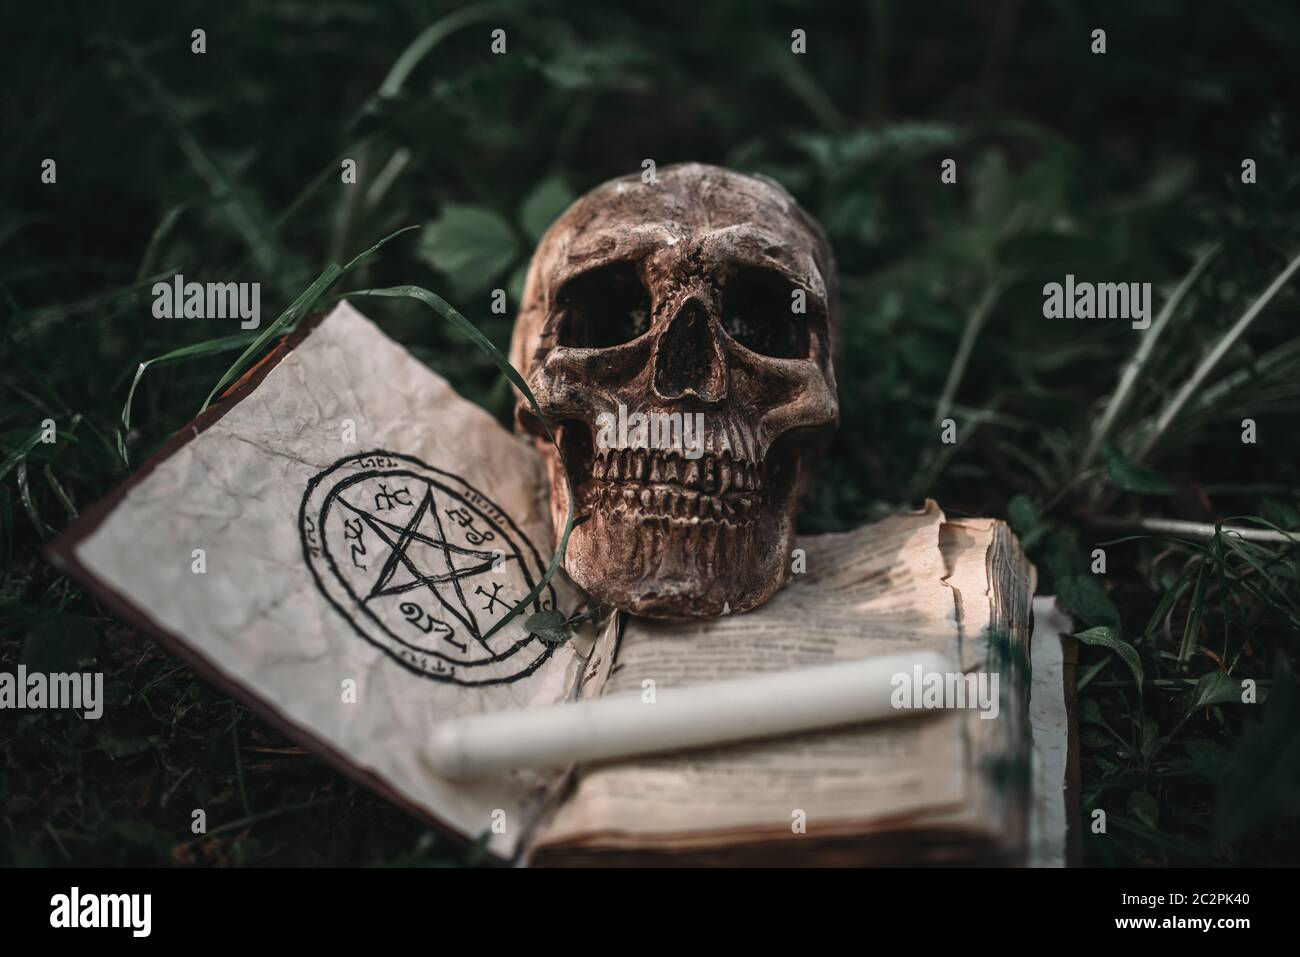 Opened black magic book with occult symbols and human skull on the grass in forest. Exorcism and supernatural rituals Stock Photo